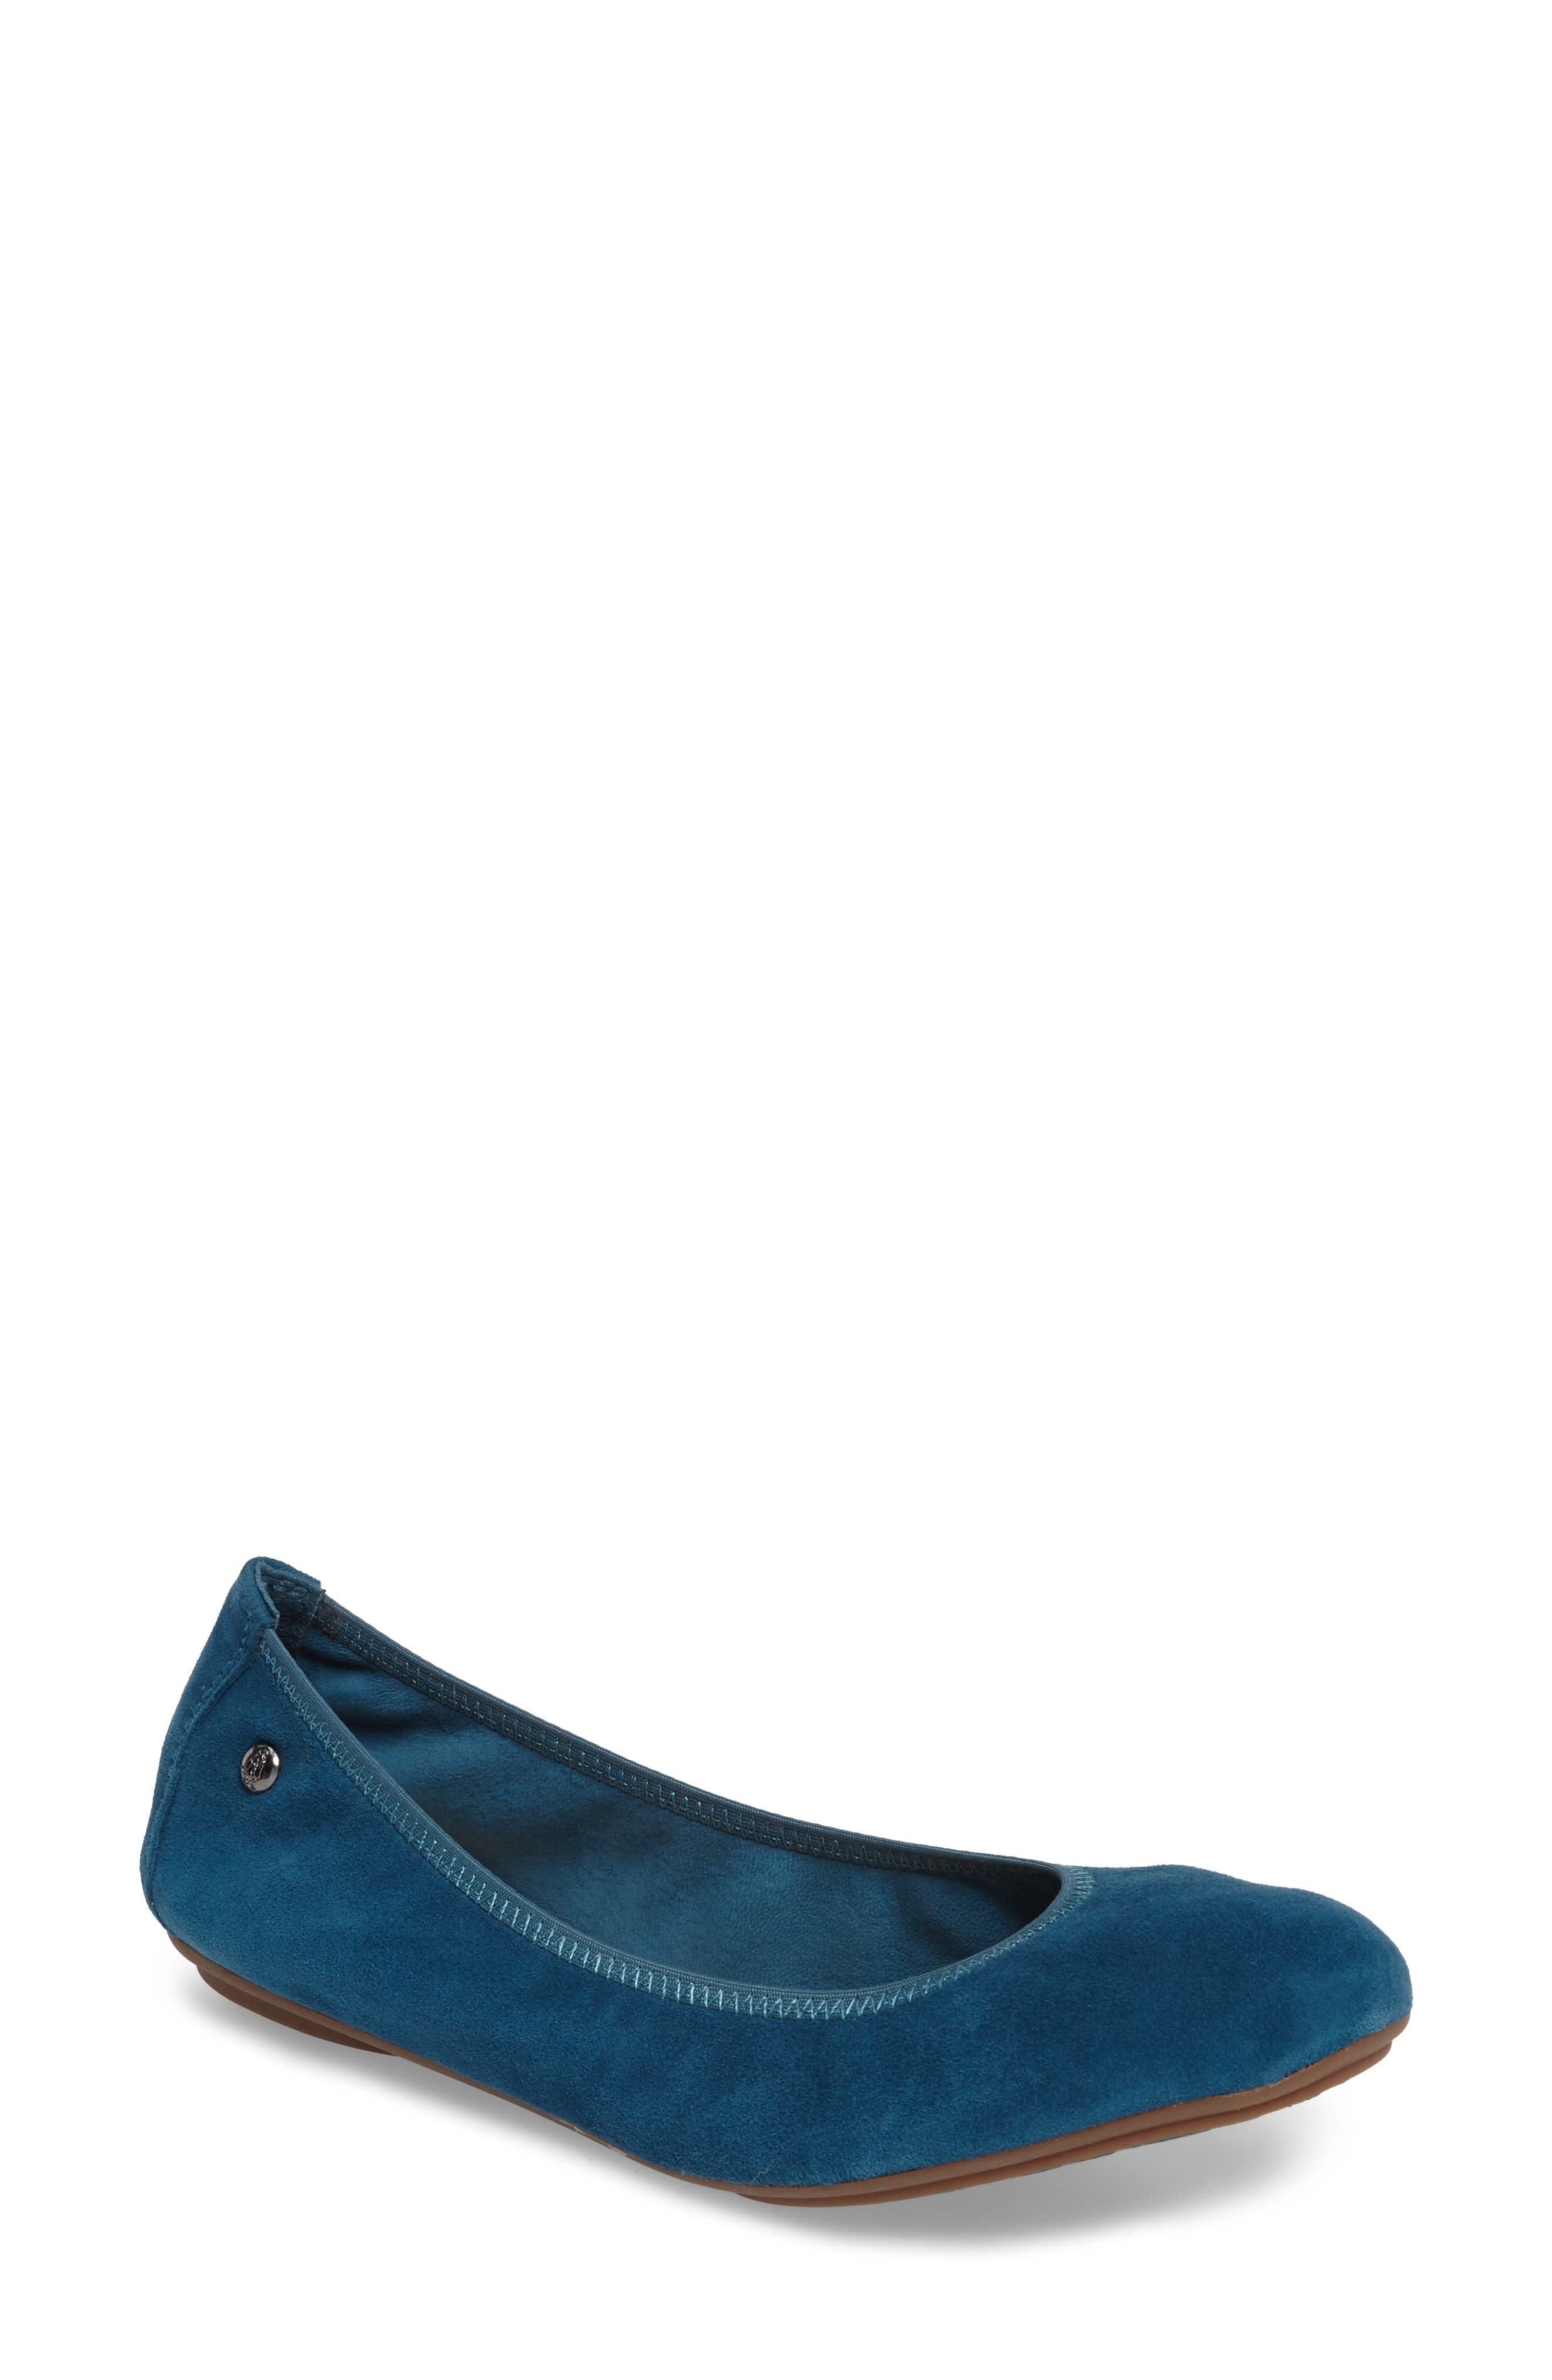 Main Image - Hush Puppies® 'Chaste' Ballet Flat (Women)